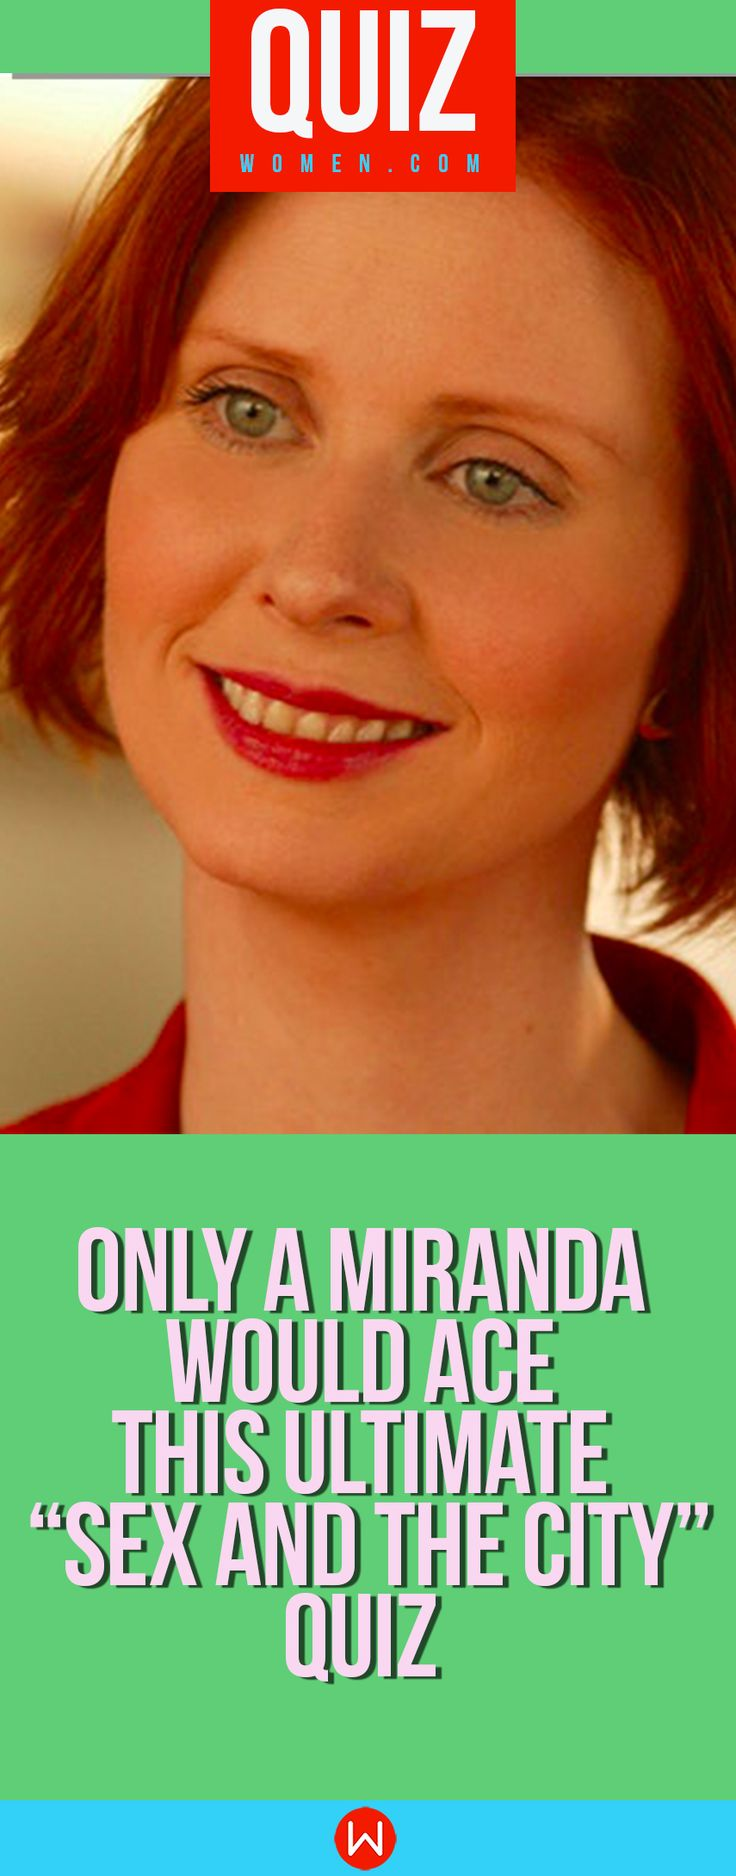 """Only A Miranda Would Ace This Ultimate """"Sex And The City"""" Quiz TV Show Quiz, Tv Show Trivia, Sitcoms Quiz, Sex and The City Trivia, Sex and The City Knowledge, TV Knowledge Trivia, Carrie Bradshaw, Buzzfeed Quizzes, Playbuzz Quiz What would Miranda Hobbes do?"""